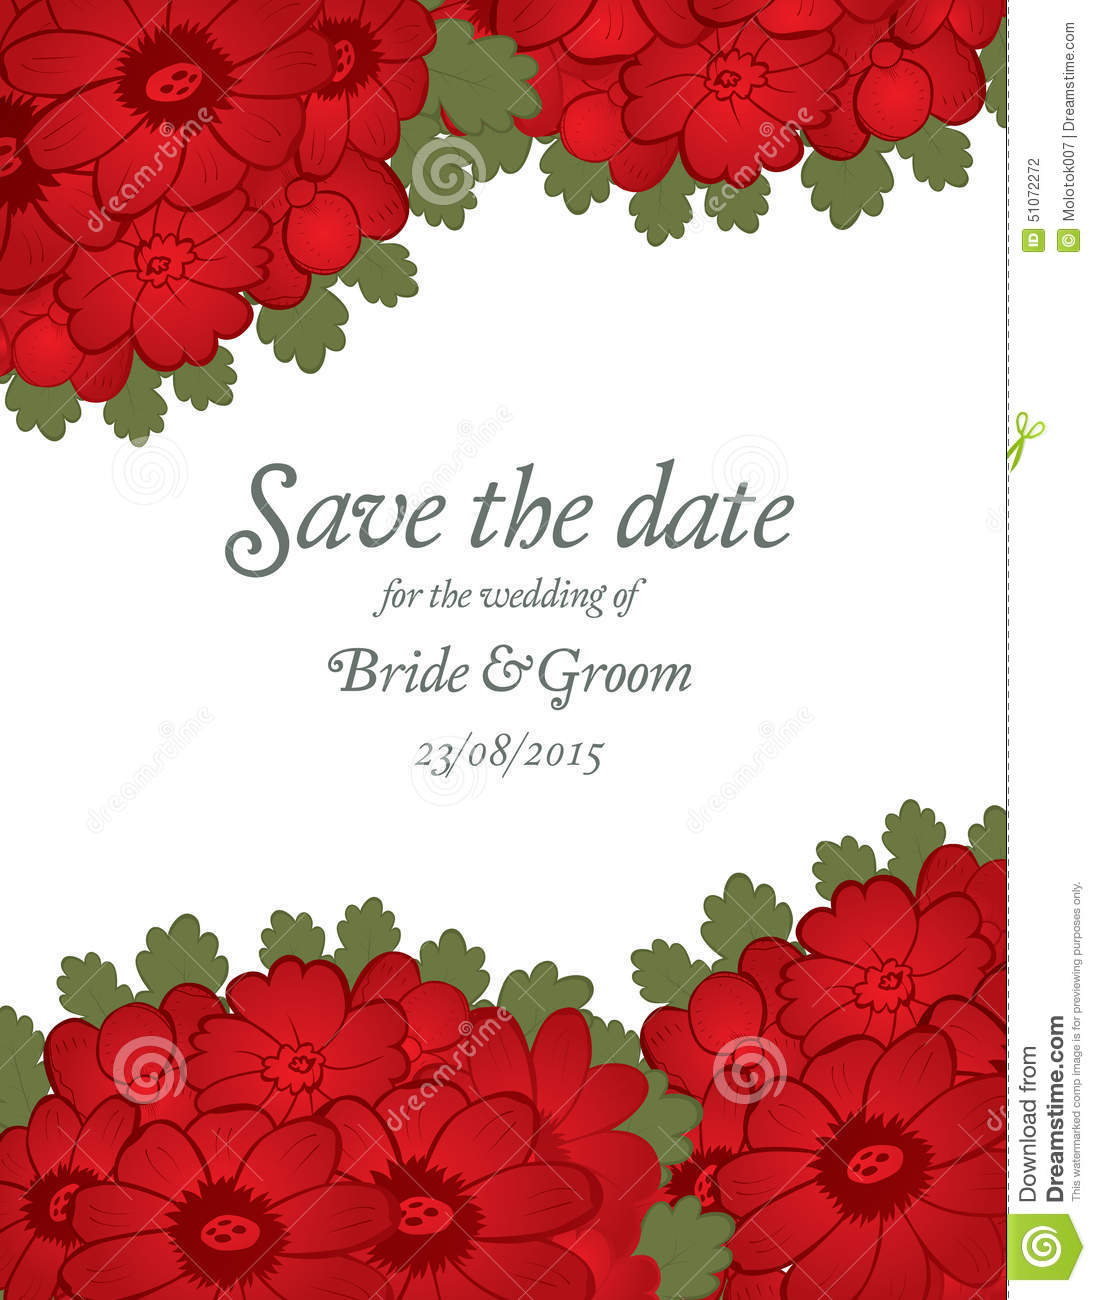 Save The Date Wedding Floral Ornament Wedding Floral: Save The Date Wedding Invite Card Template With Red